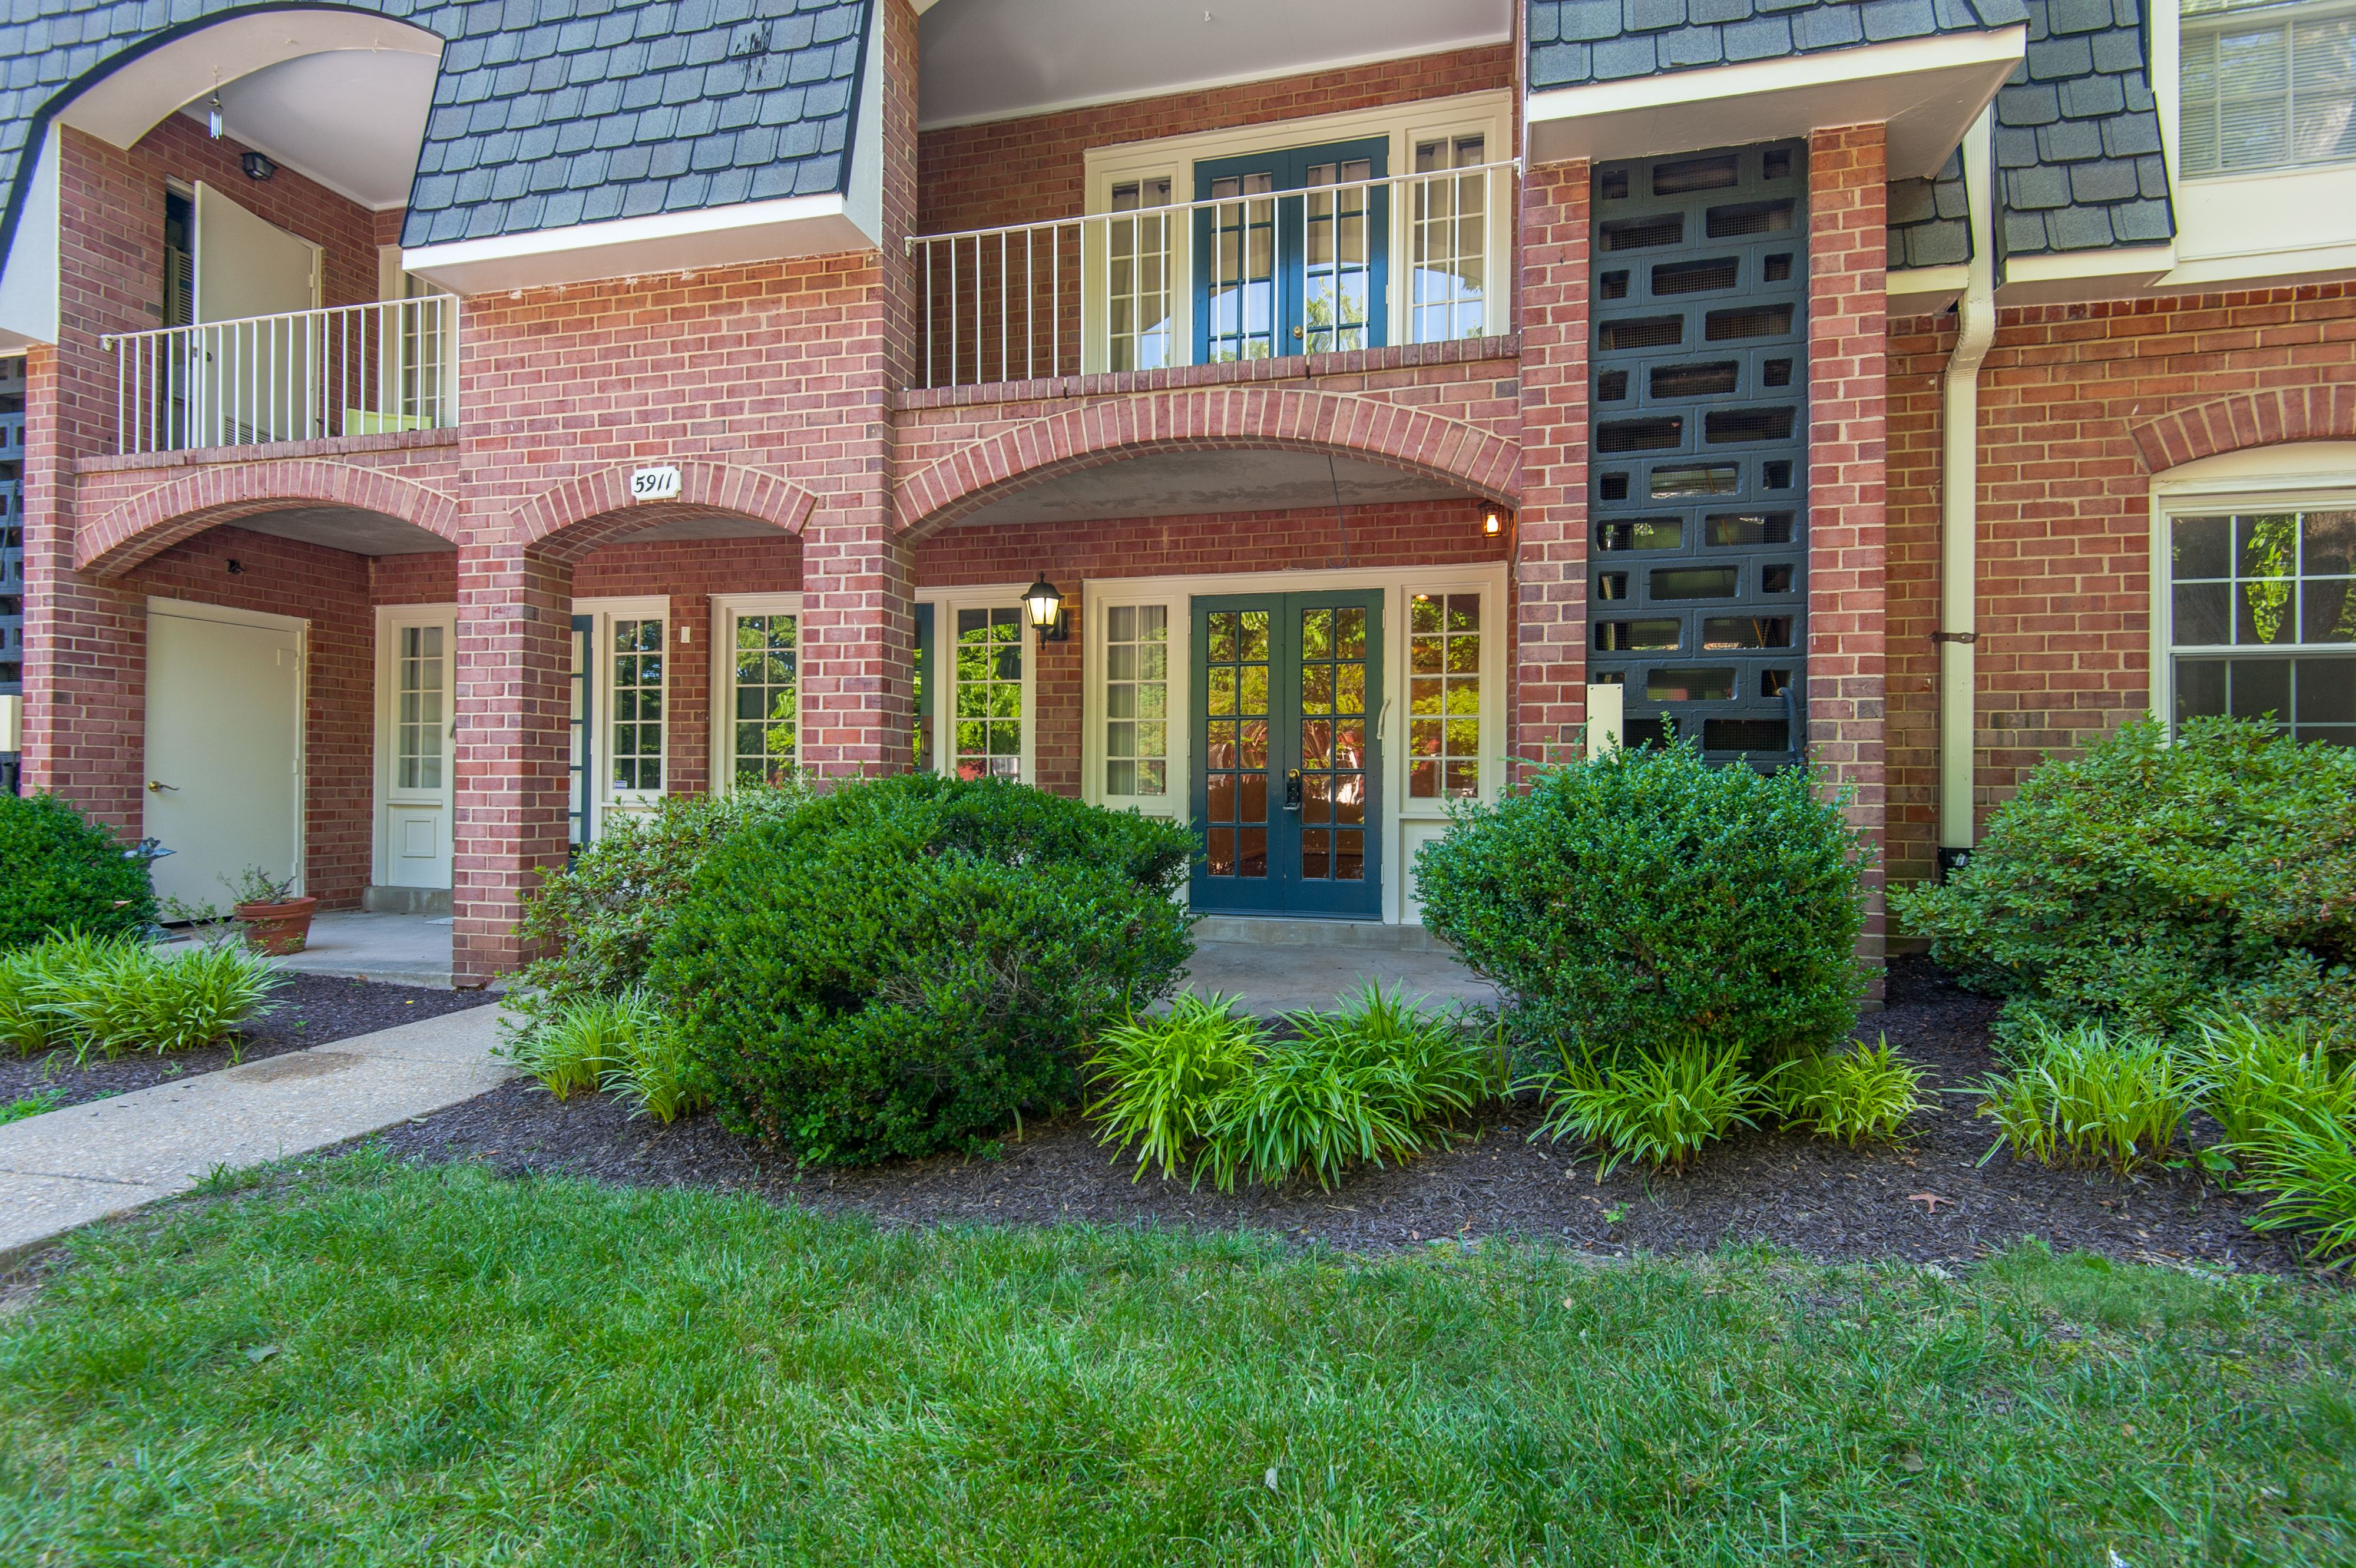 NEW LISTING:Renovated Condo in Cardinal Forest